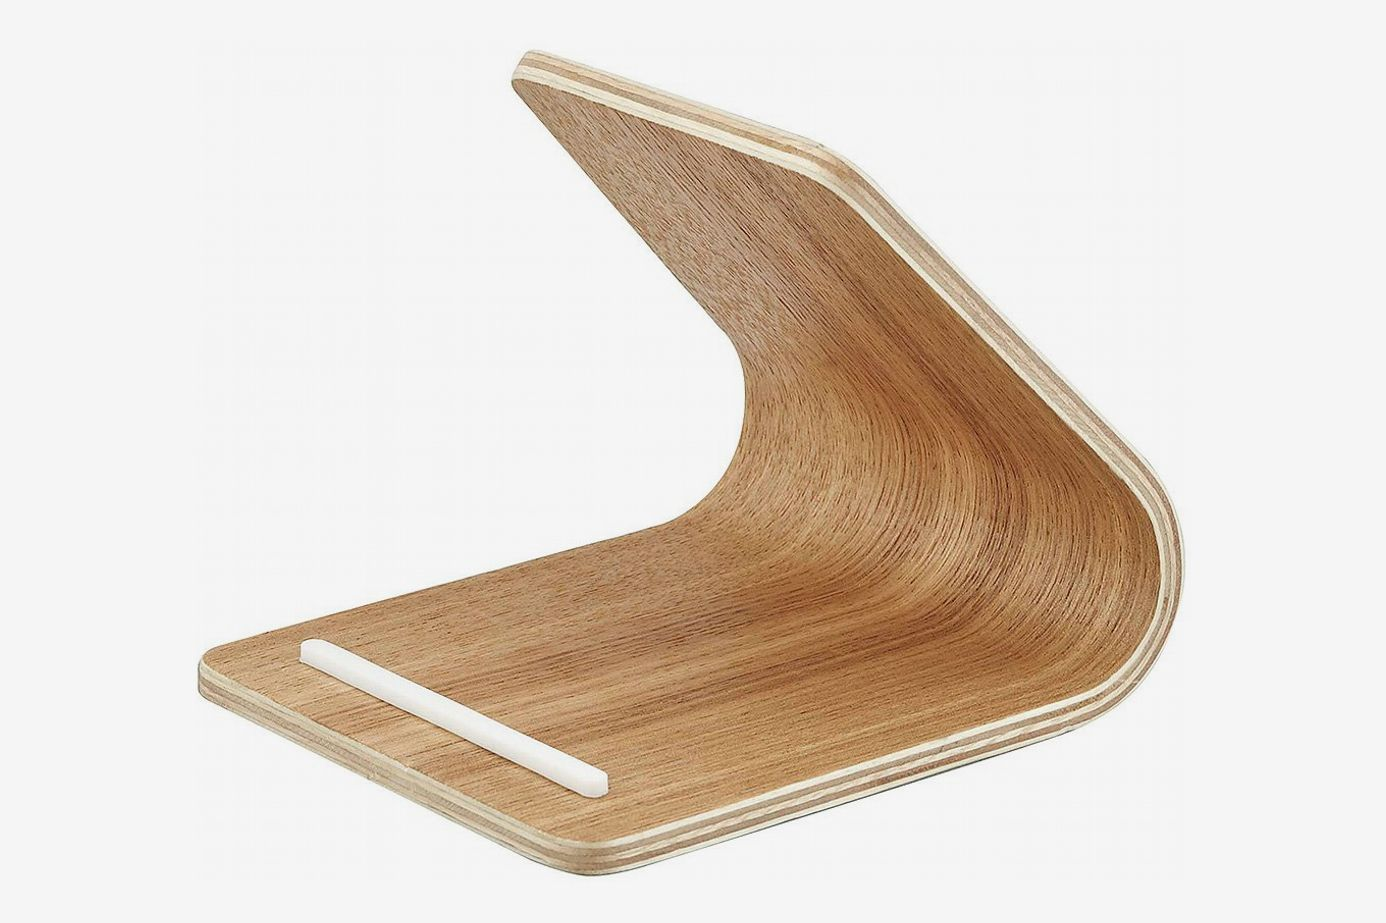 Yamazaki Home Rin Plywood Tablet Stand, Beige